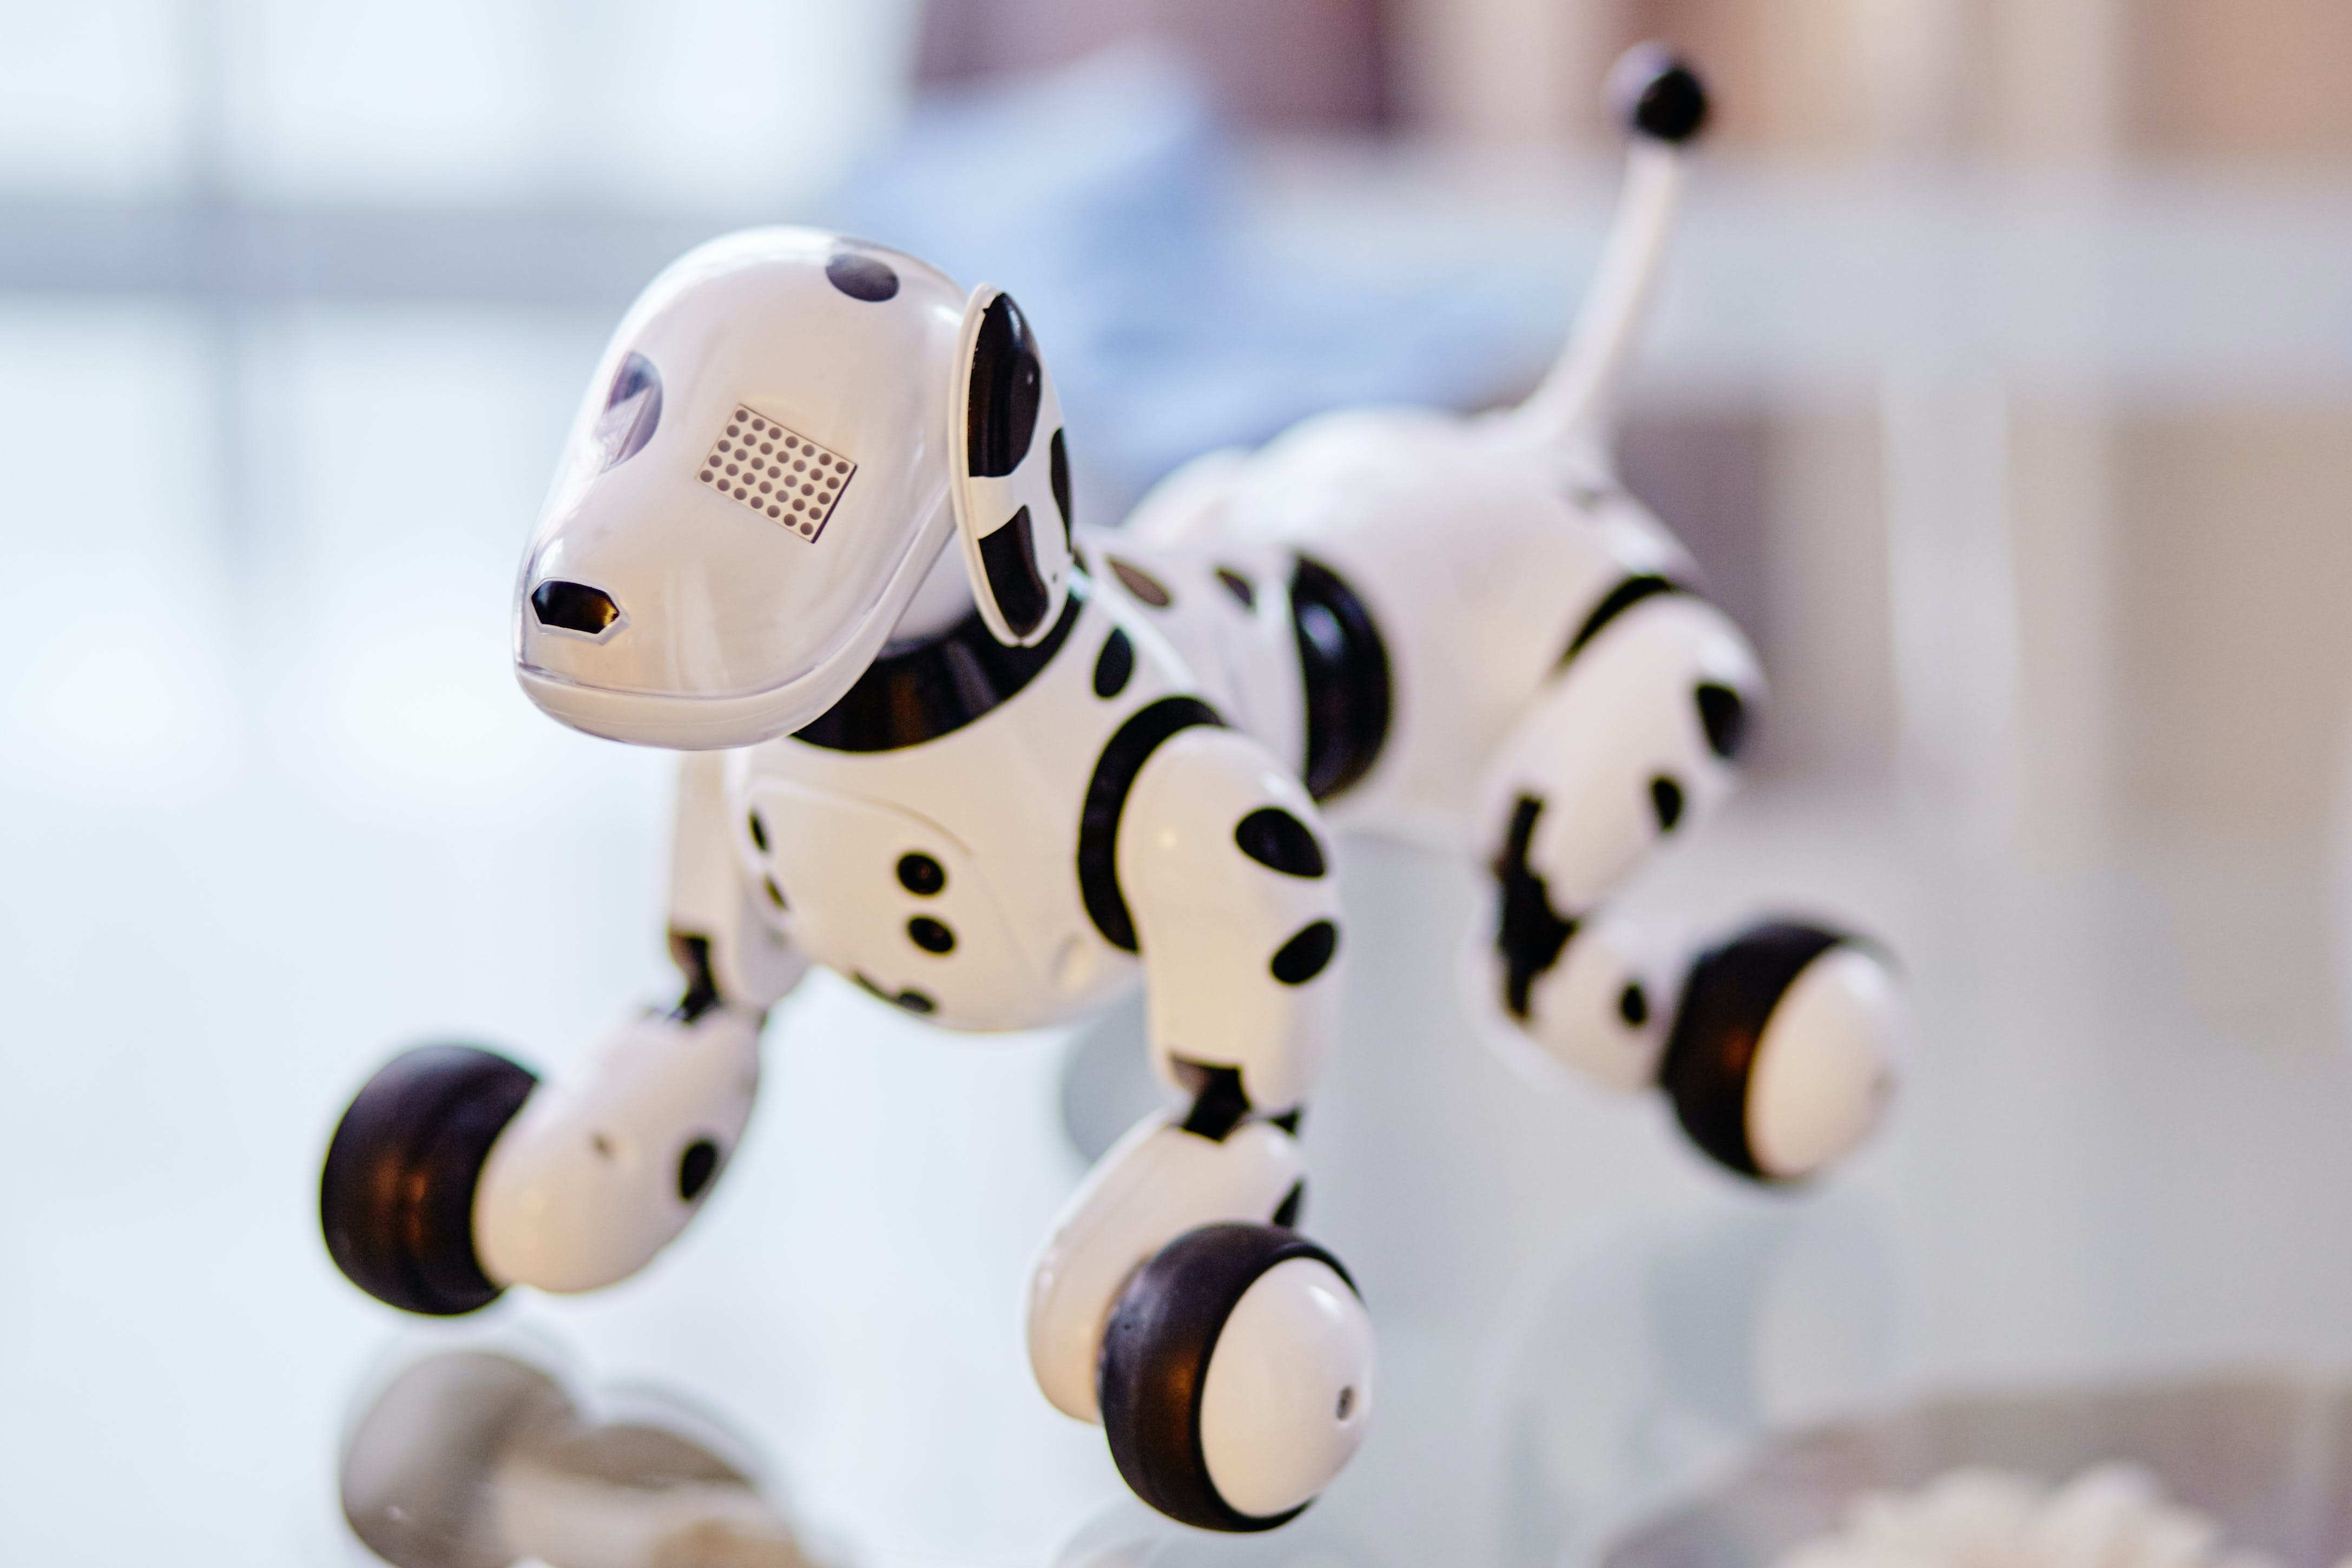 White and Black Dog Robot on Clear Glass Table